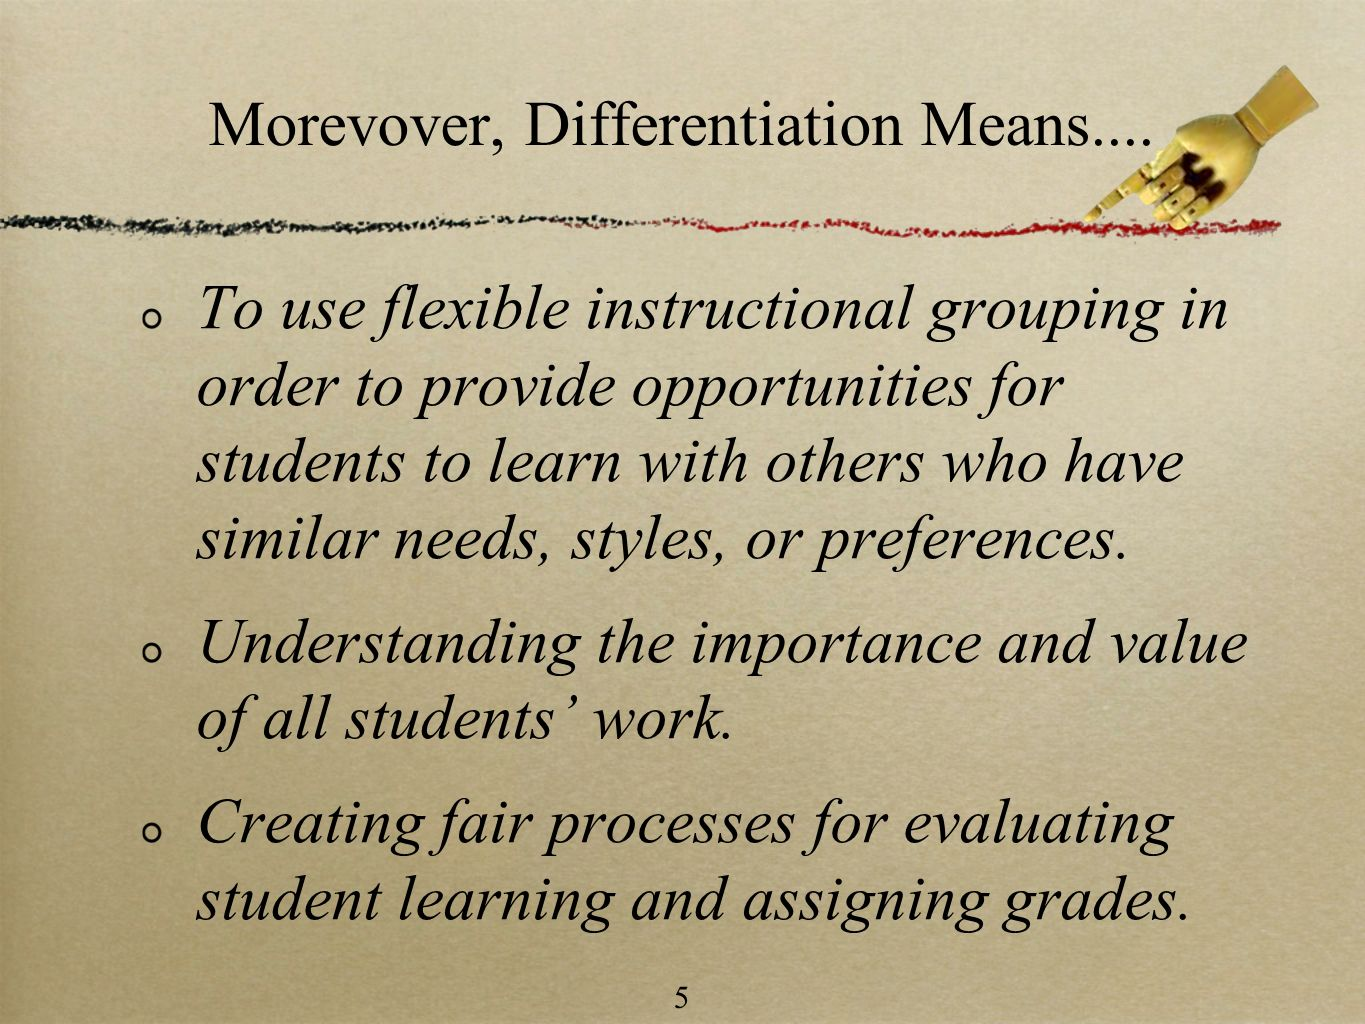 5 Morevover, Differentiation Means.... To use flexible instructional grouping in order to provide opportunities for students to learn with others who